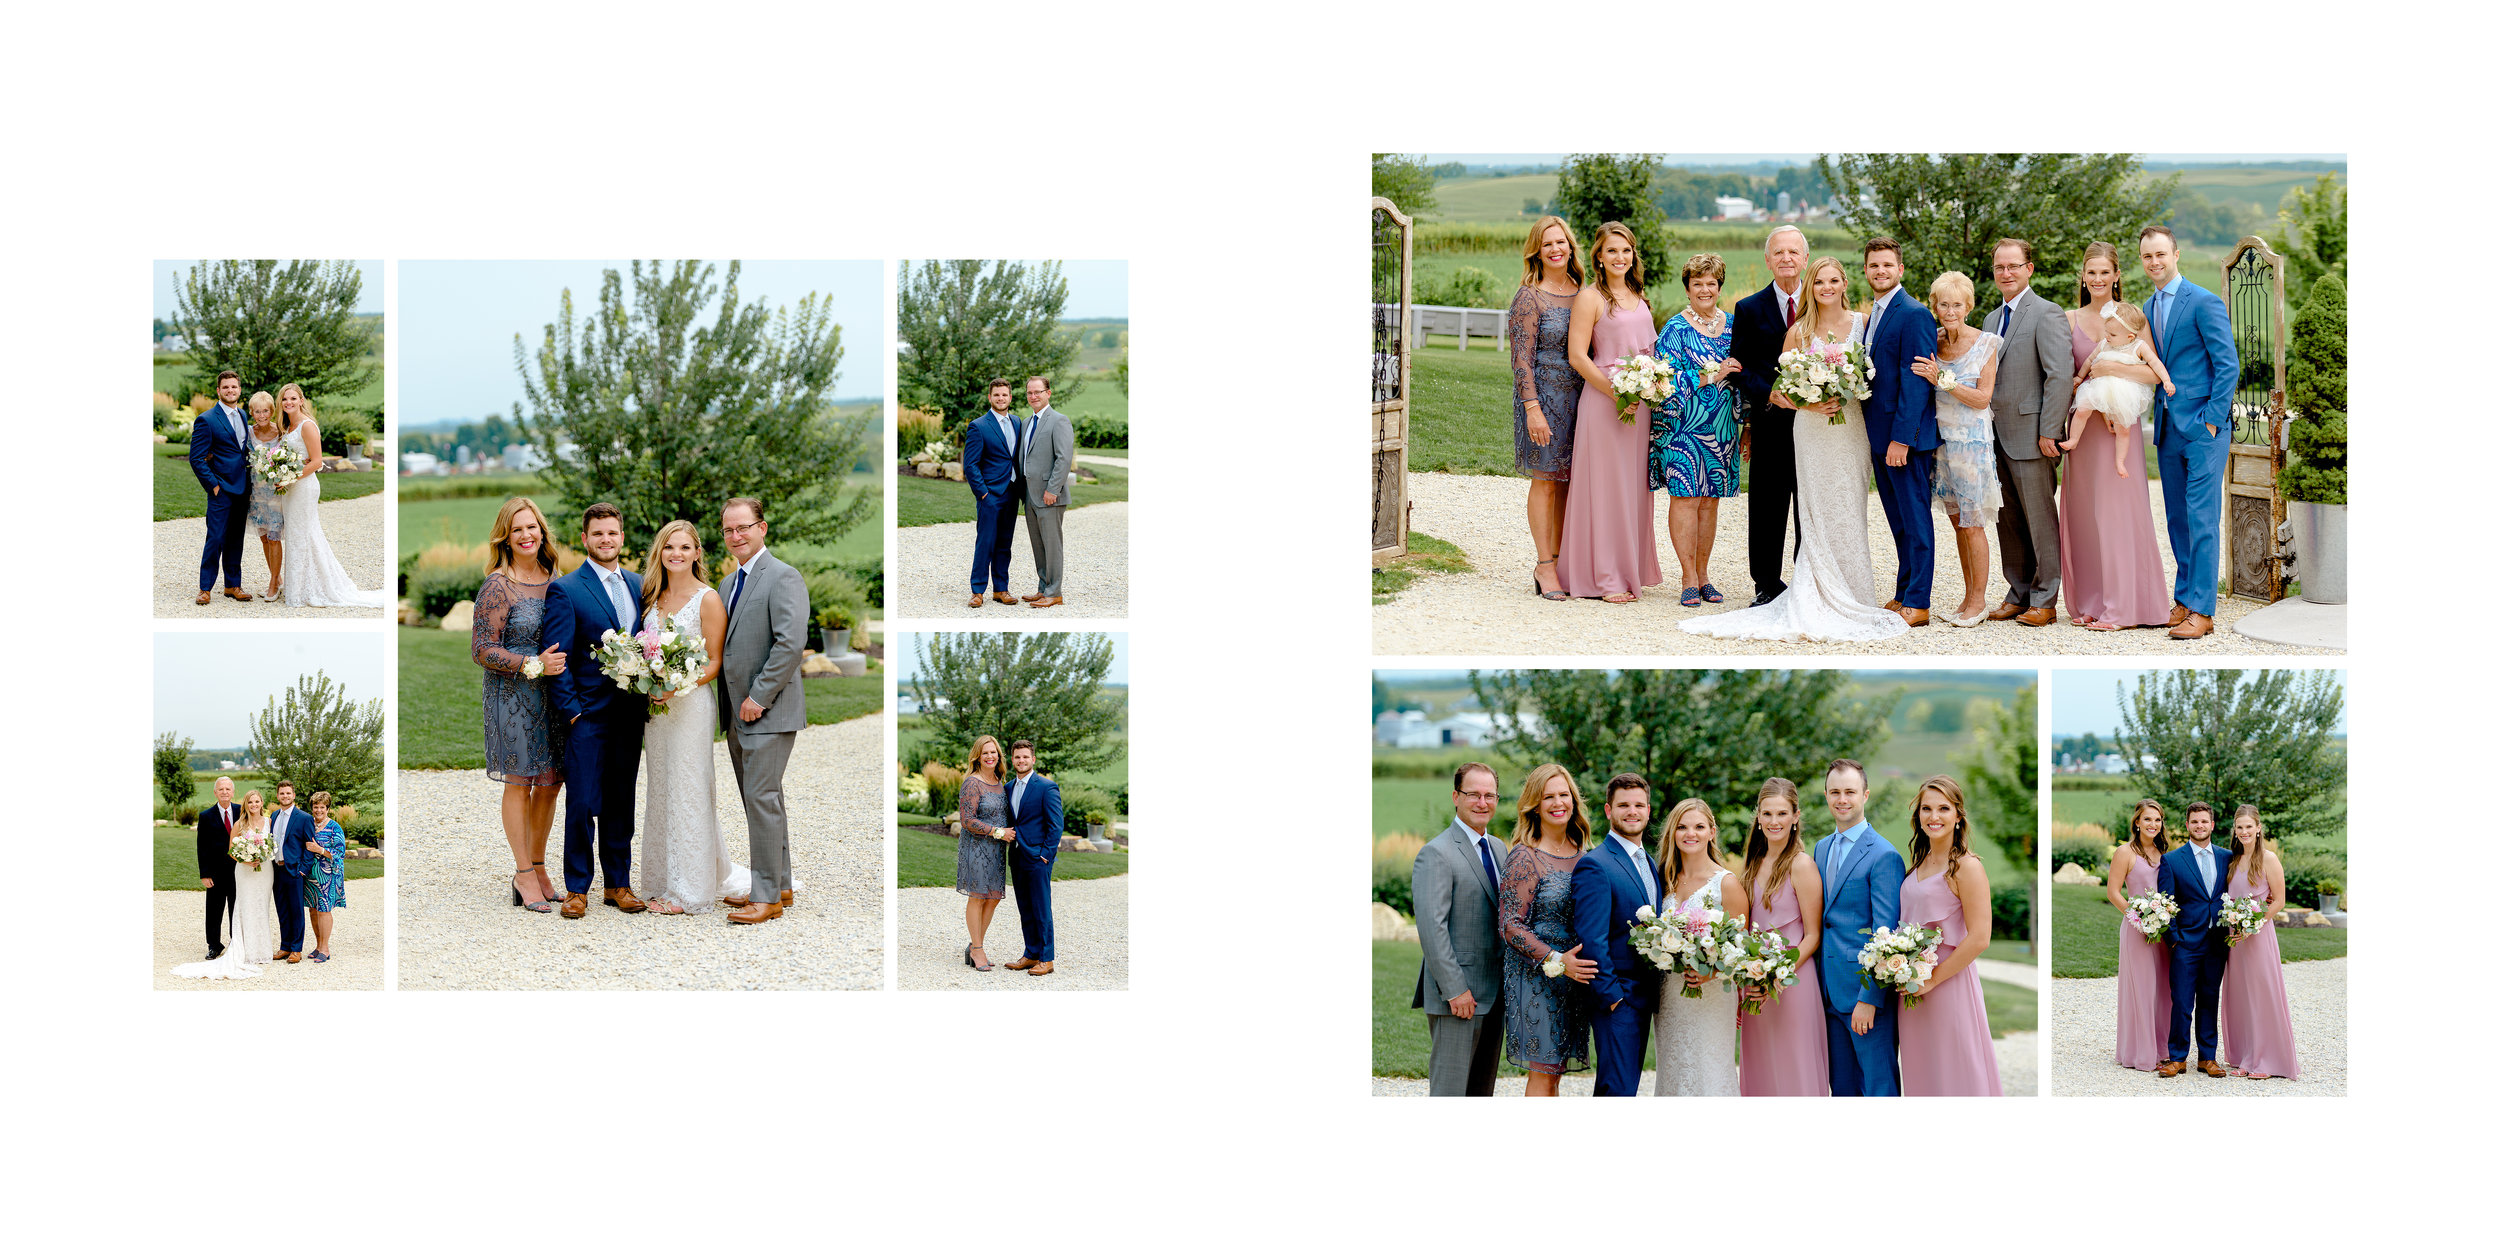 Ashley + Justin - Wedding Album_17.jpg